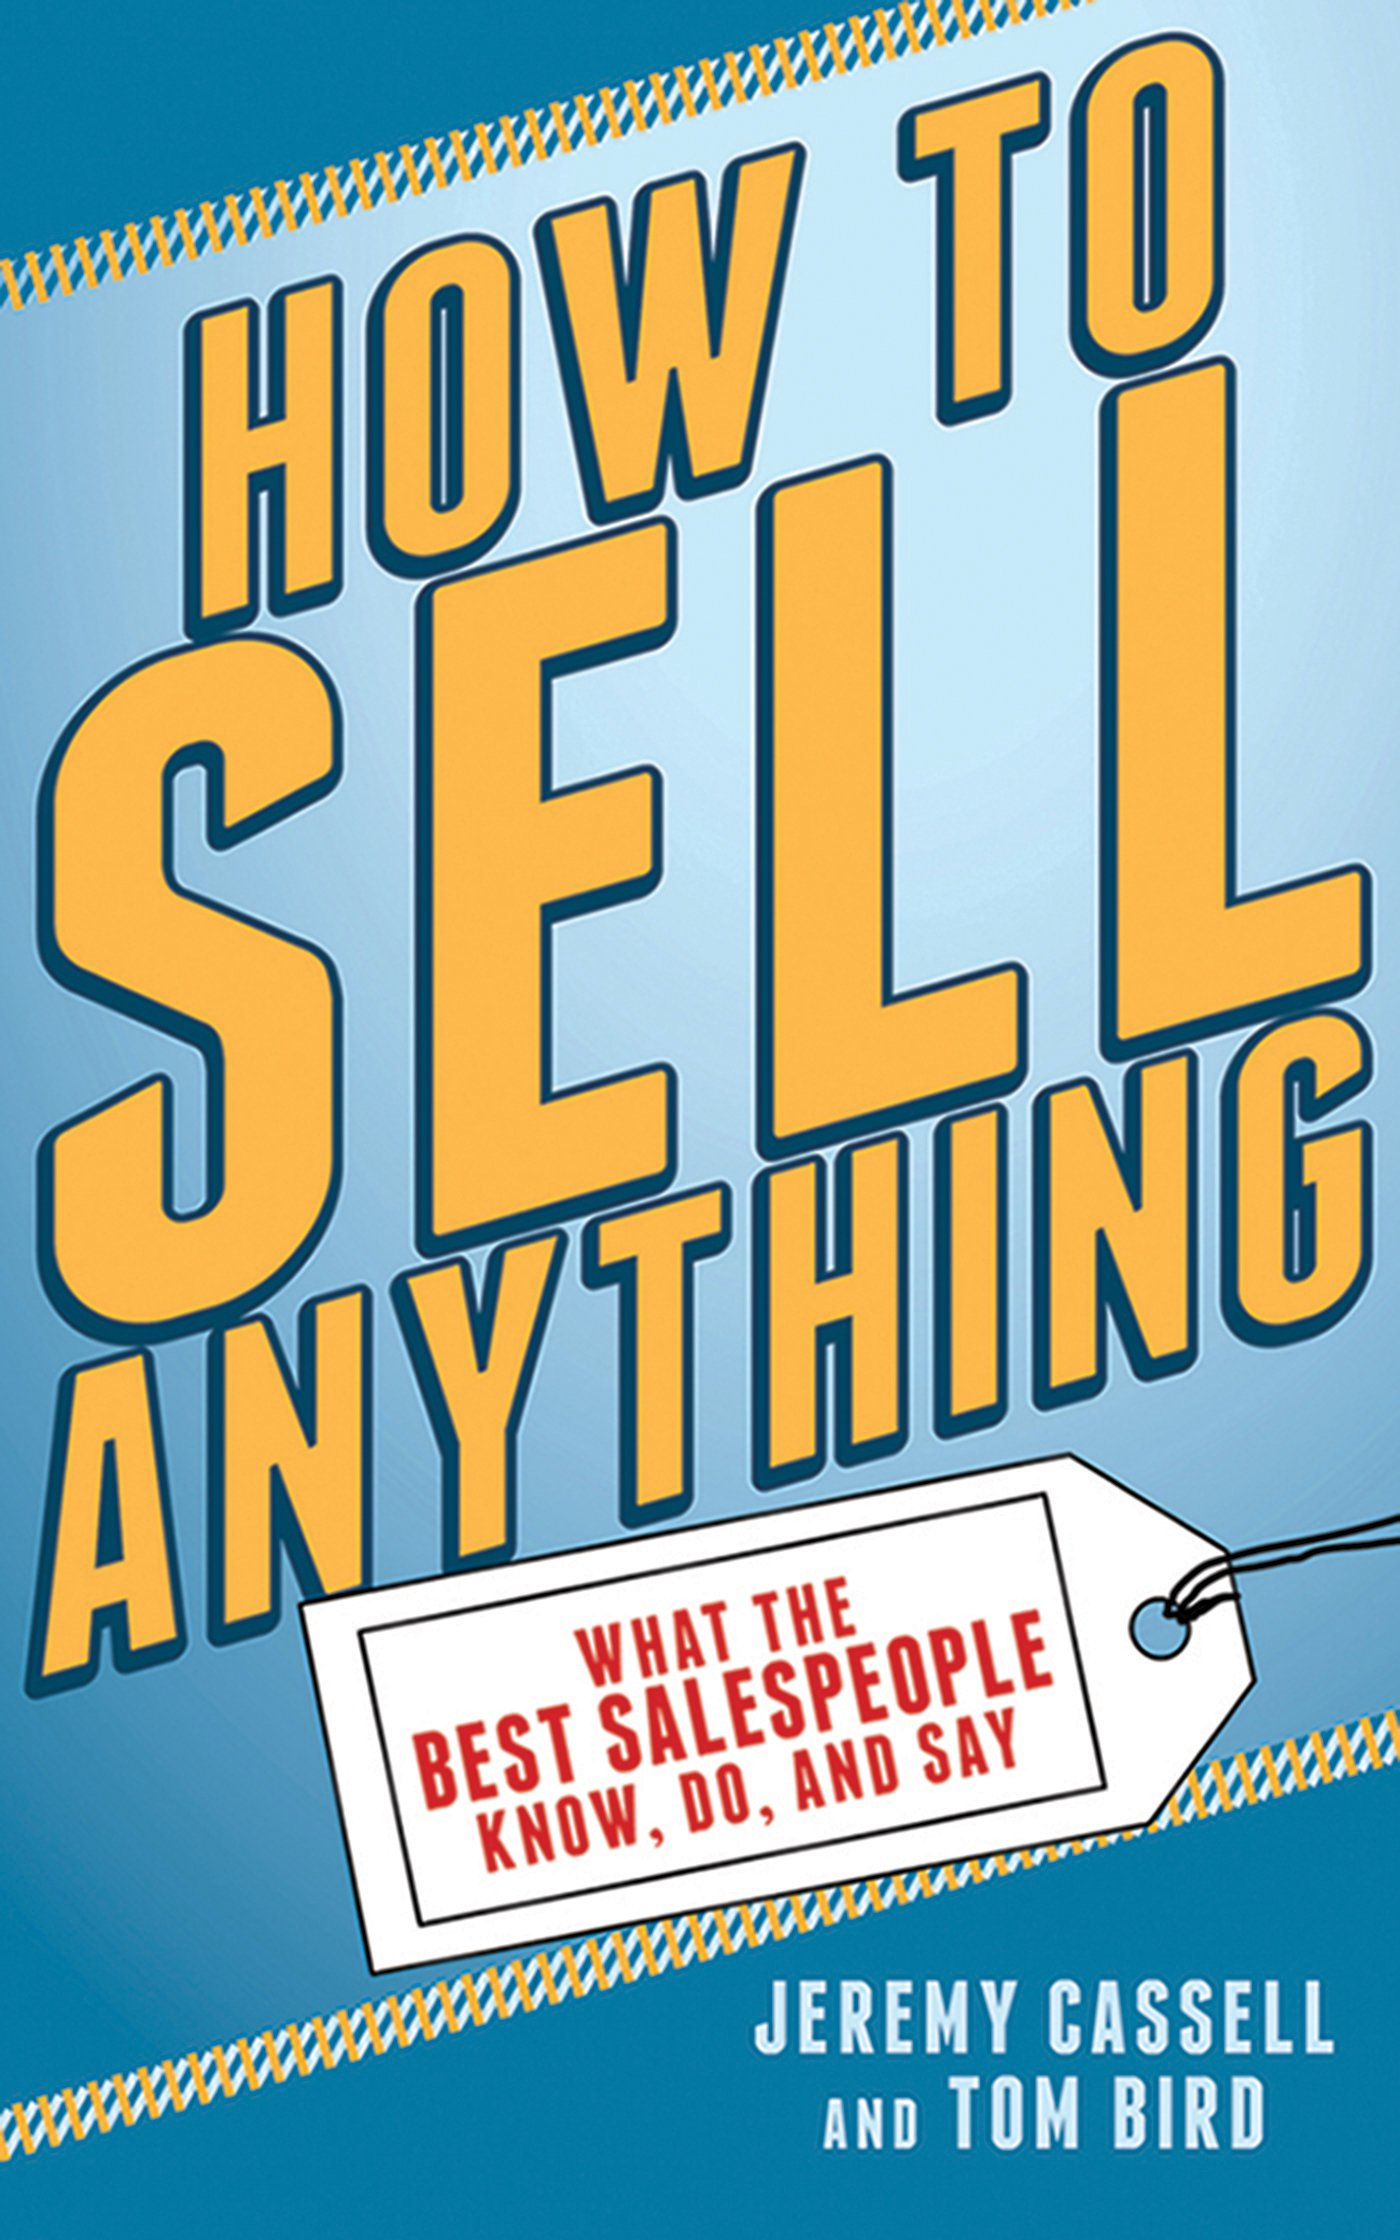 How to Sell Anything: What the Best Salespeople Know, Do, and Say: Jeremy  Cassell, Tom Bird: 9781620877784: Amazon.com: Books